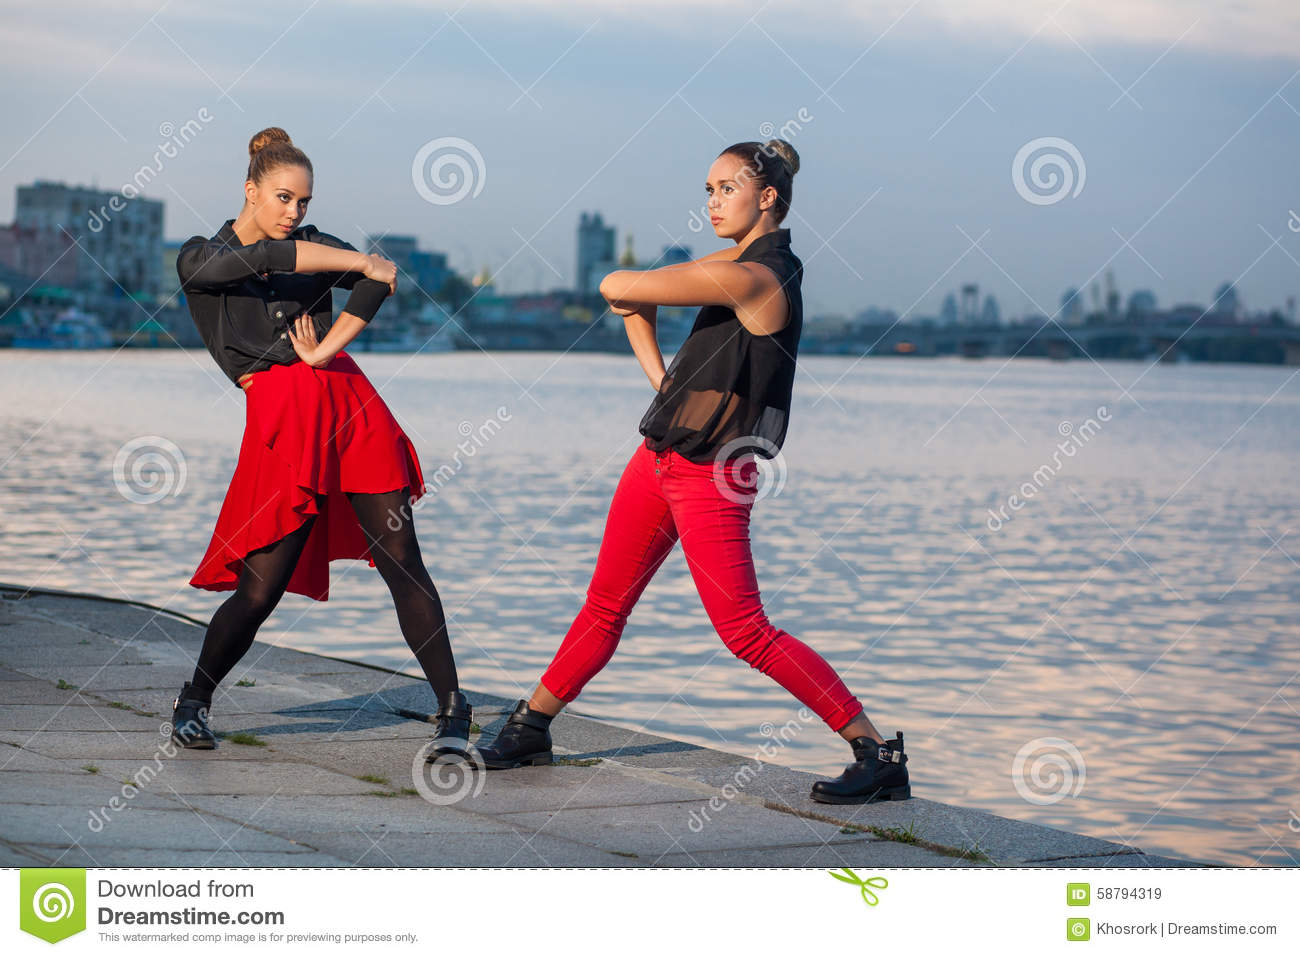 Two Young Beautiful Twin Sisters Are Dancing Waacking Dance In The City Background Near River. Stock Image - Image of black, girl: 58794319